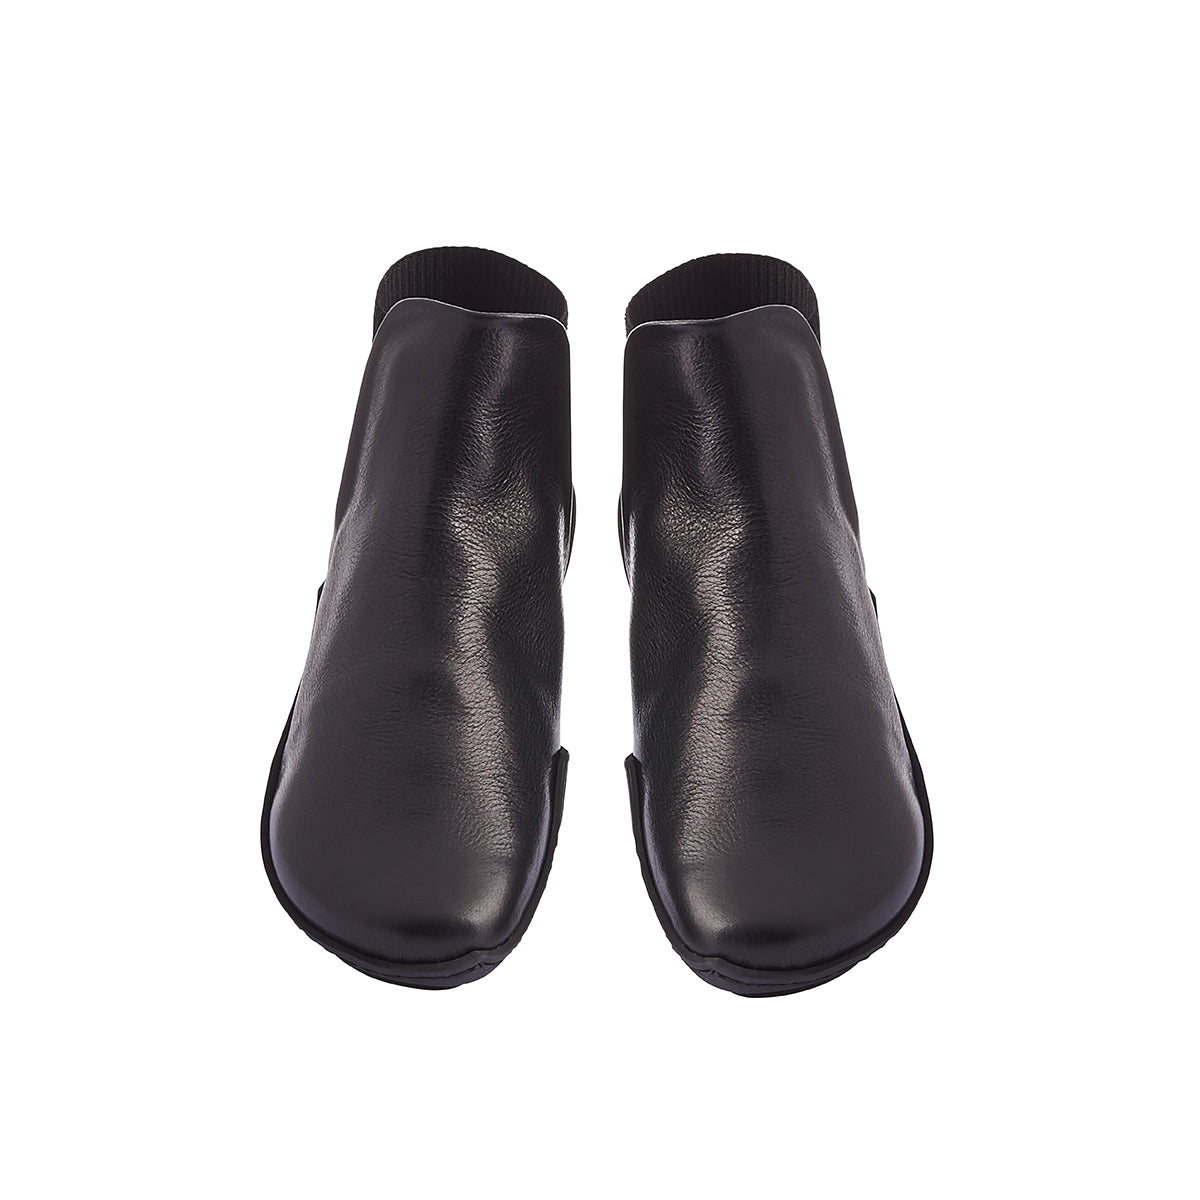 This sporty yet refined ankle boot from Trippen features an elastic section that wraps around the heel for a snug, very comfy fit. The soft leather lining and supple black leather upper combine for winter readiness and the textured rubber 'wave' sole is complemented internally by a contoured leather footbed providing arch support.